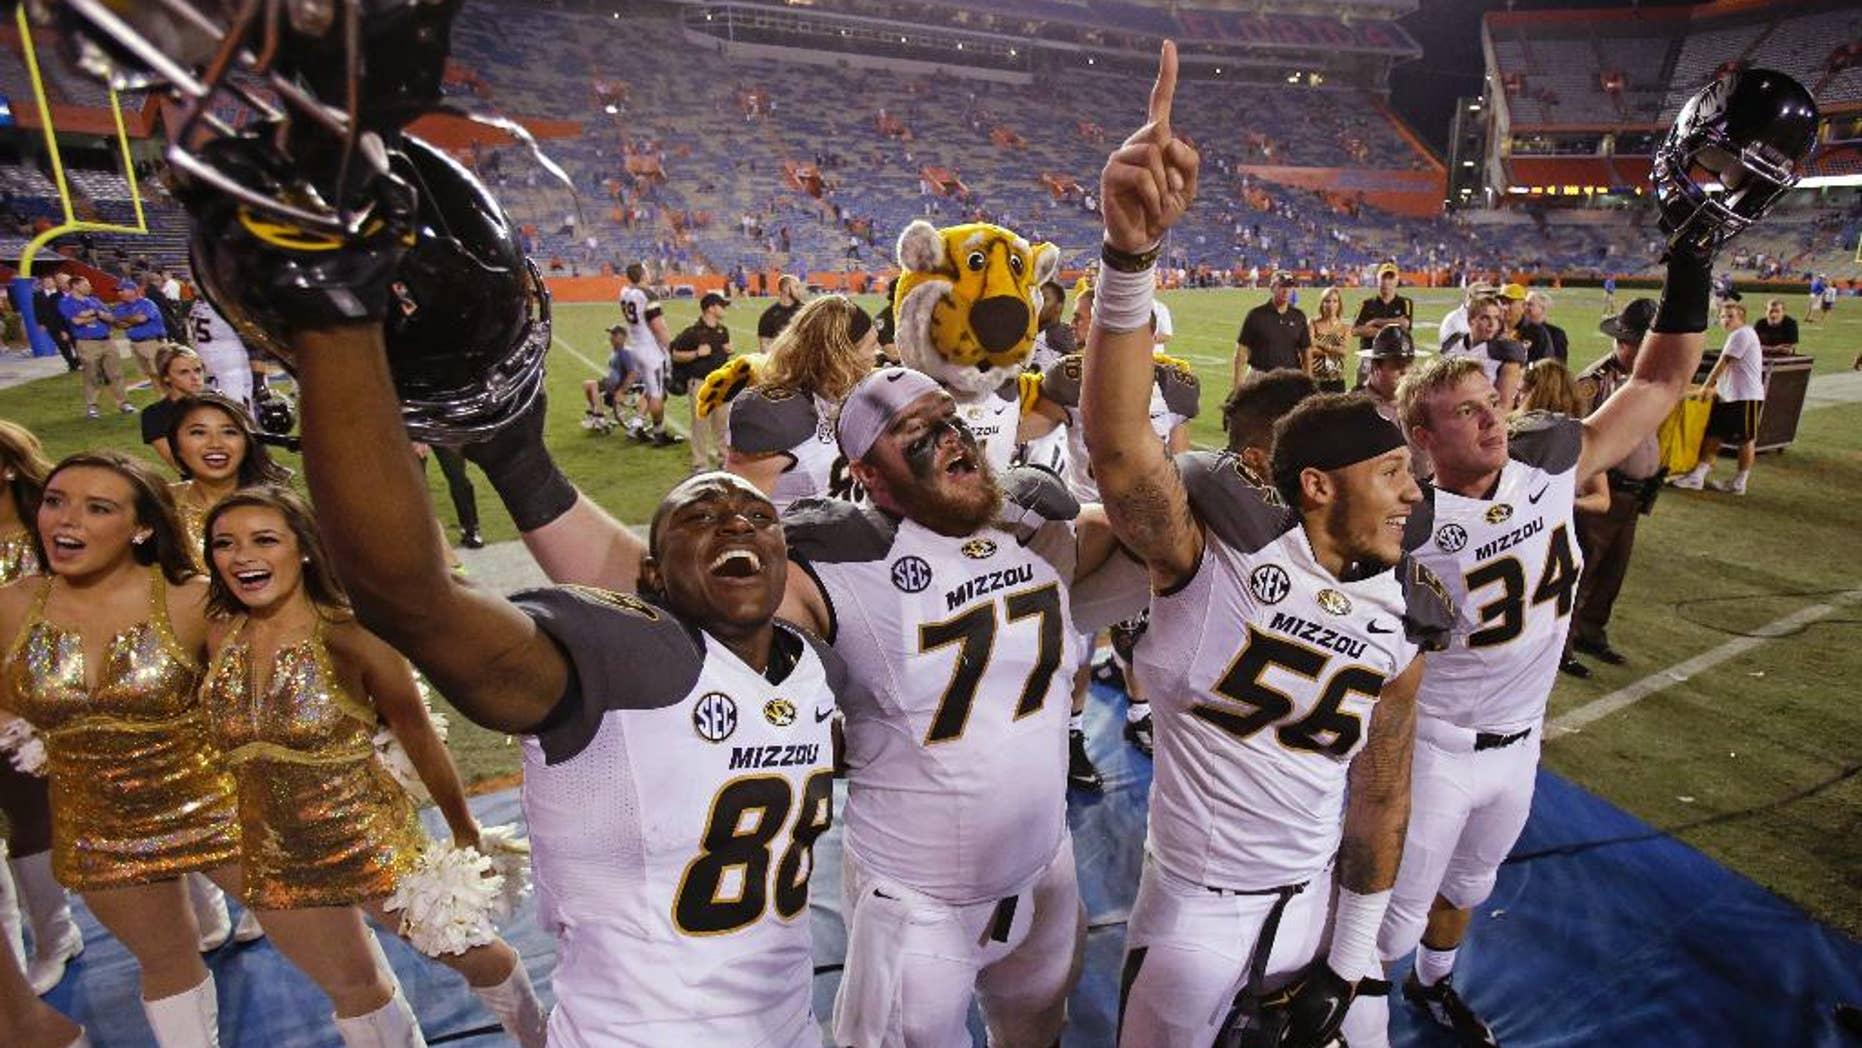 Missouri's Jimmie Hunt (88), Evan Boehm (77), Shane Ray (56) and Joey Burkett (34) celebrate in front of fans after Missouri defeated Florida 42-13 in an NCAA college football game in Gainesville, Fla., Saturday, Oct. 18, 2014. (AP Photo/John Raoux)